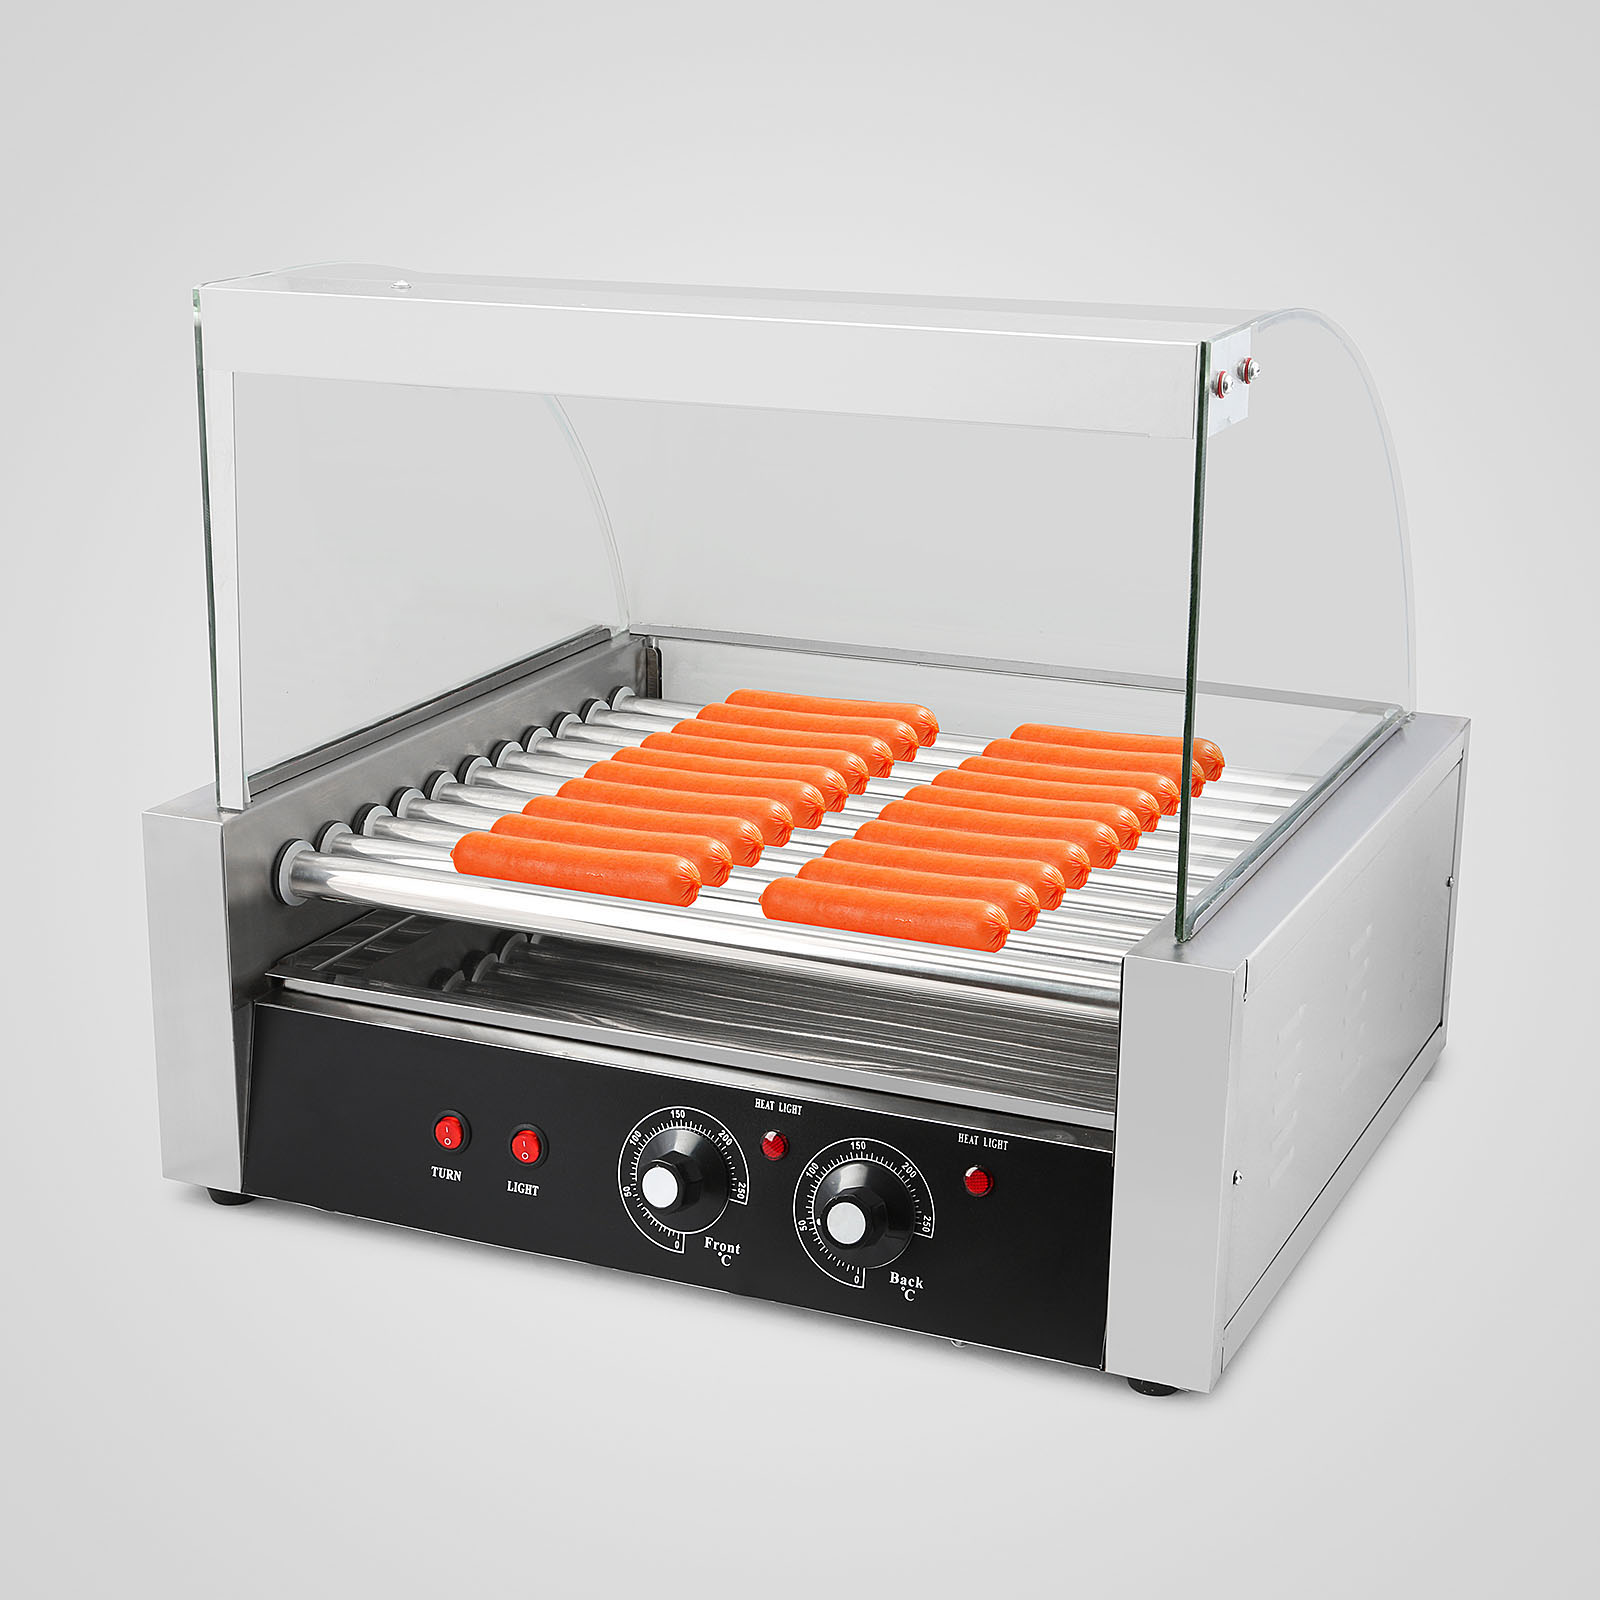 new commercial 30 hot dog hotdog 11 roller grill cooker machine w cover ebay. Black Bedroom Furniture Sets. Home Design Ideas